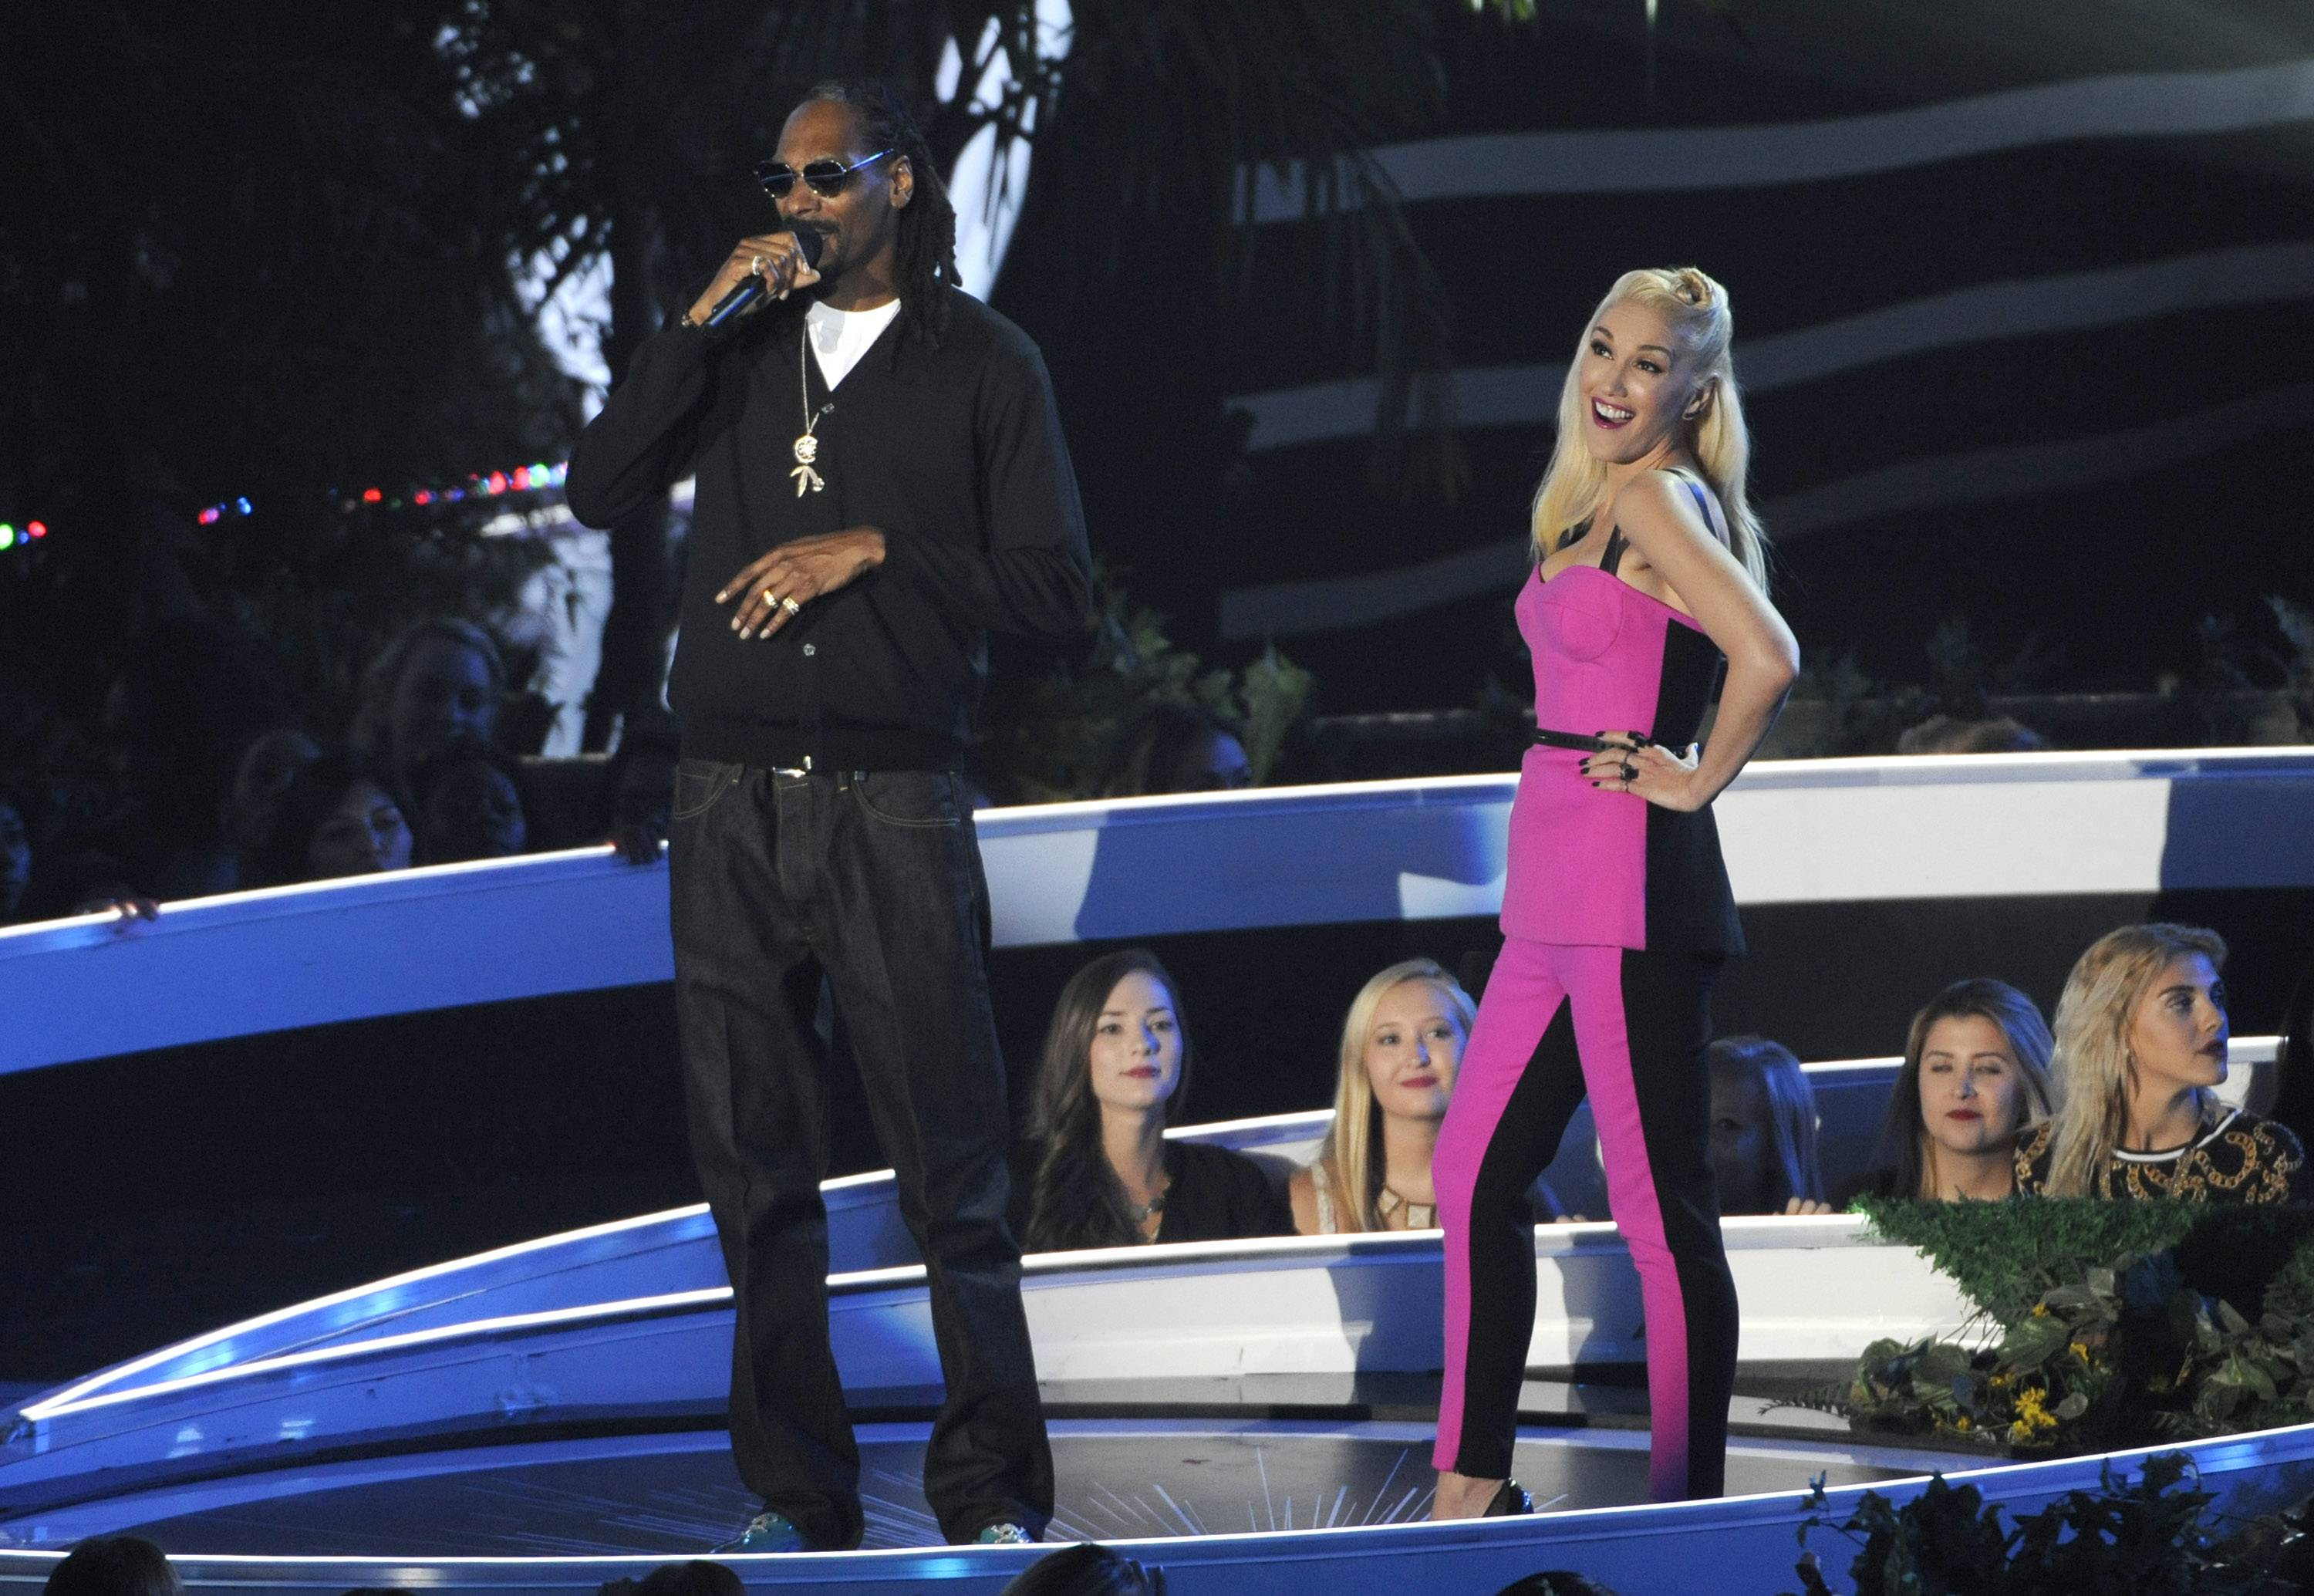 Snoop Dogg and Gwen Stefani present an award for best female video at the MTV Video Music Awards.